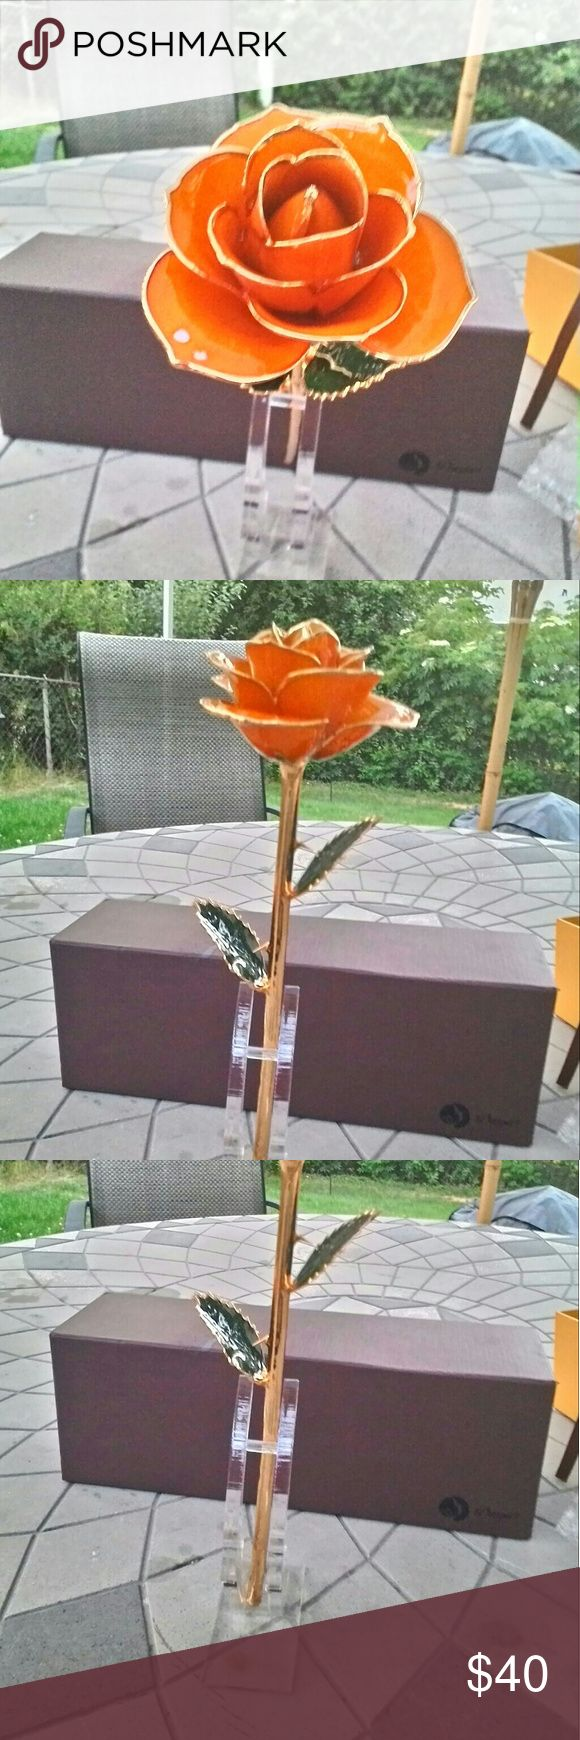 """Daya: 24k Gold Plated Dipped Rose Beautiful, long stem orange rose dipped in 24k gold plated. Eternal display of passion, gratitude, and/or enthusiasm is the Orange rose's meaning. The symbol brings invigorating energy as a special token. Comes in it's original box. Measures: 13""""x4""""x4"""" Daya Other"""